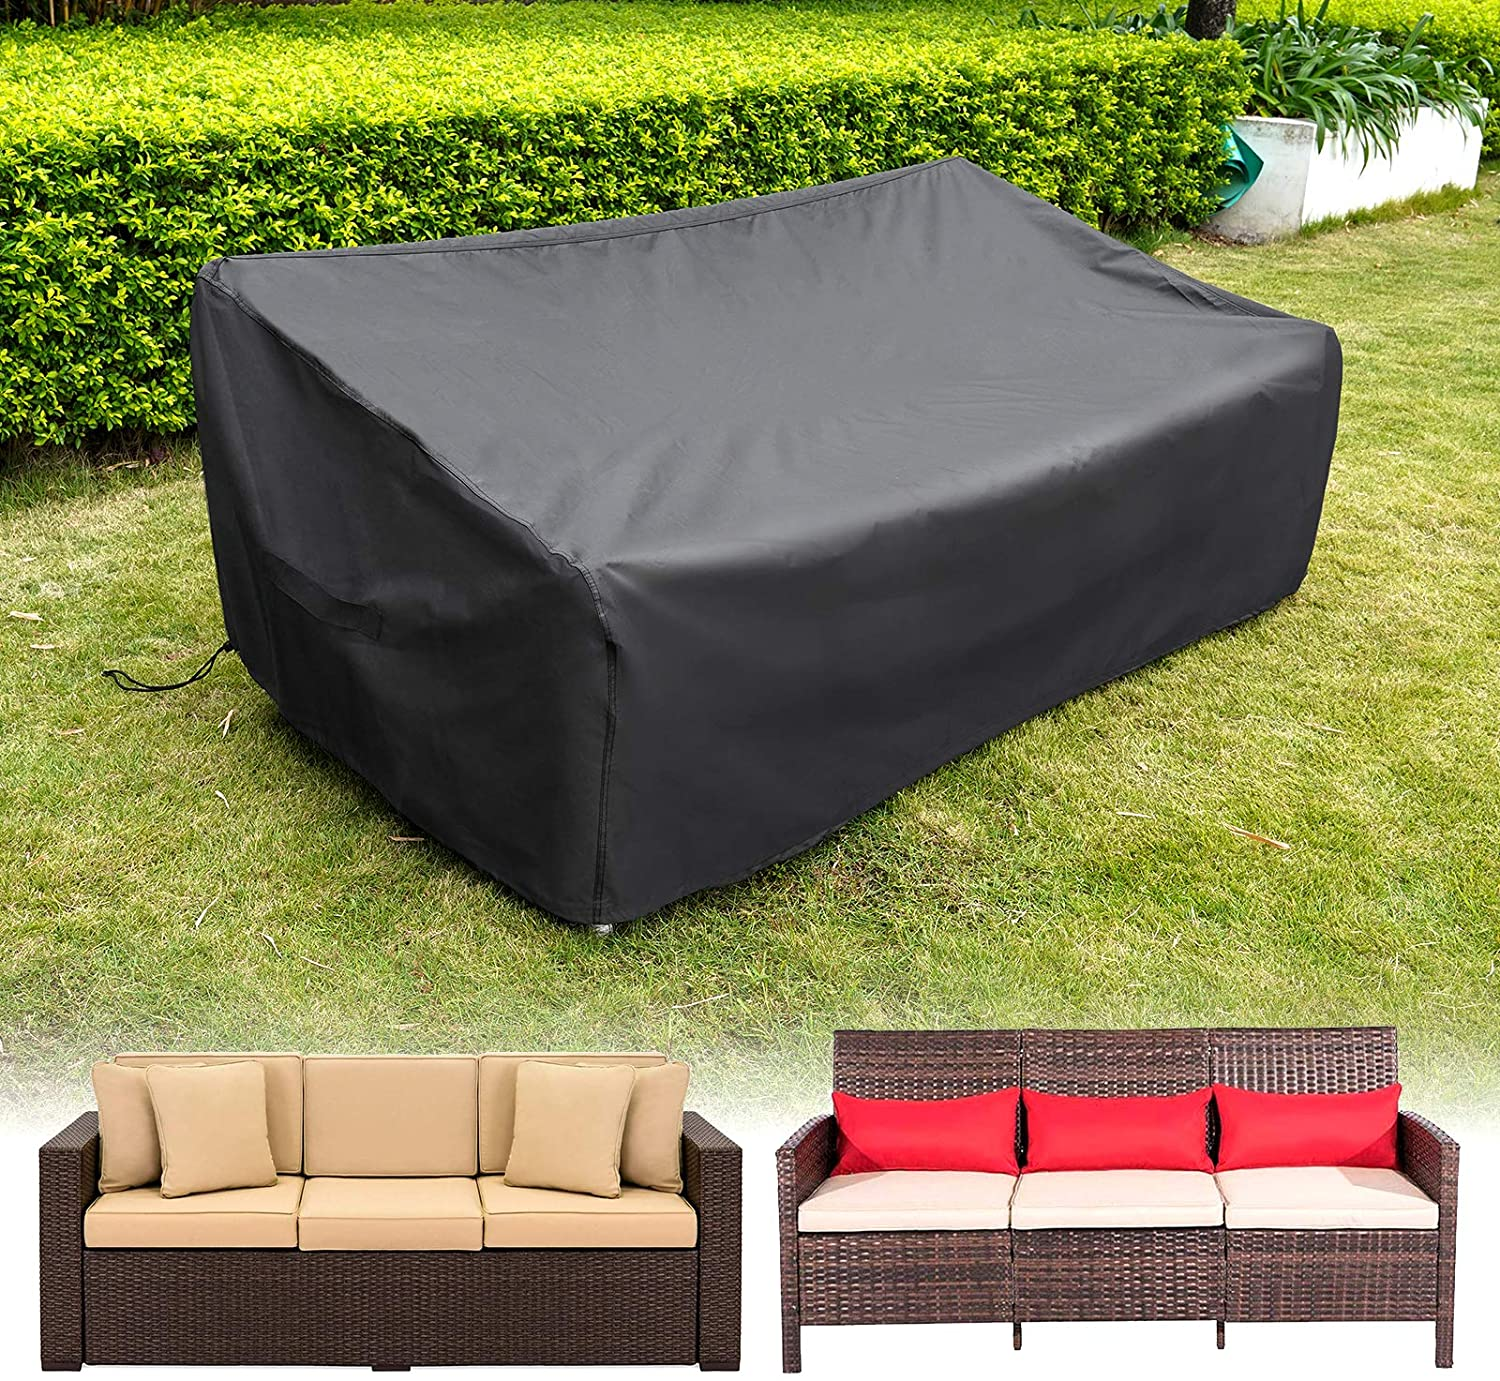 HIRALIY 82.6 Inch Outdoor Sofa Cover, Waterproof Patio Outdoor Couch Cover, 420D Heavy Duty Oxford Fabric Patio Loveseat Bench Covers, Durable & Sun-Protecitve, 82.6